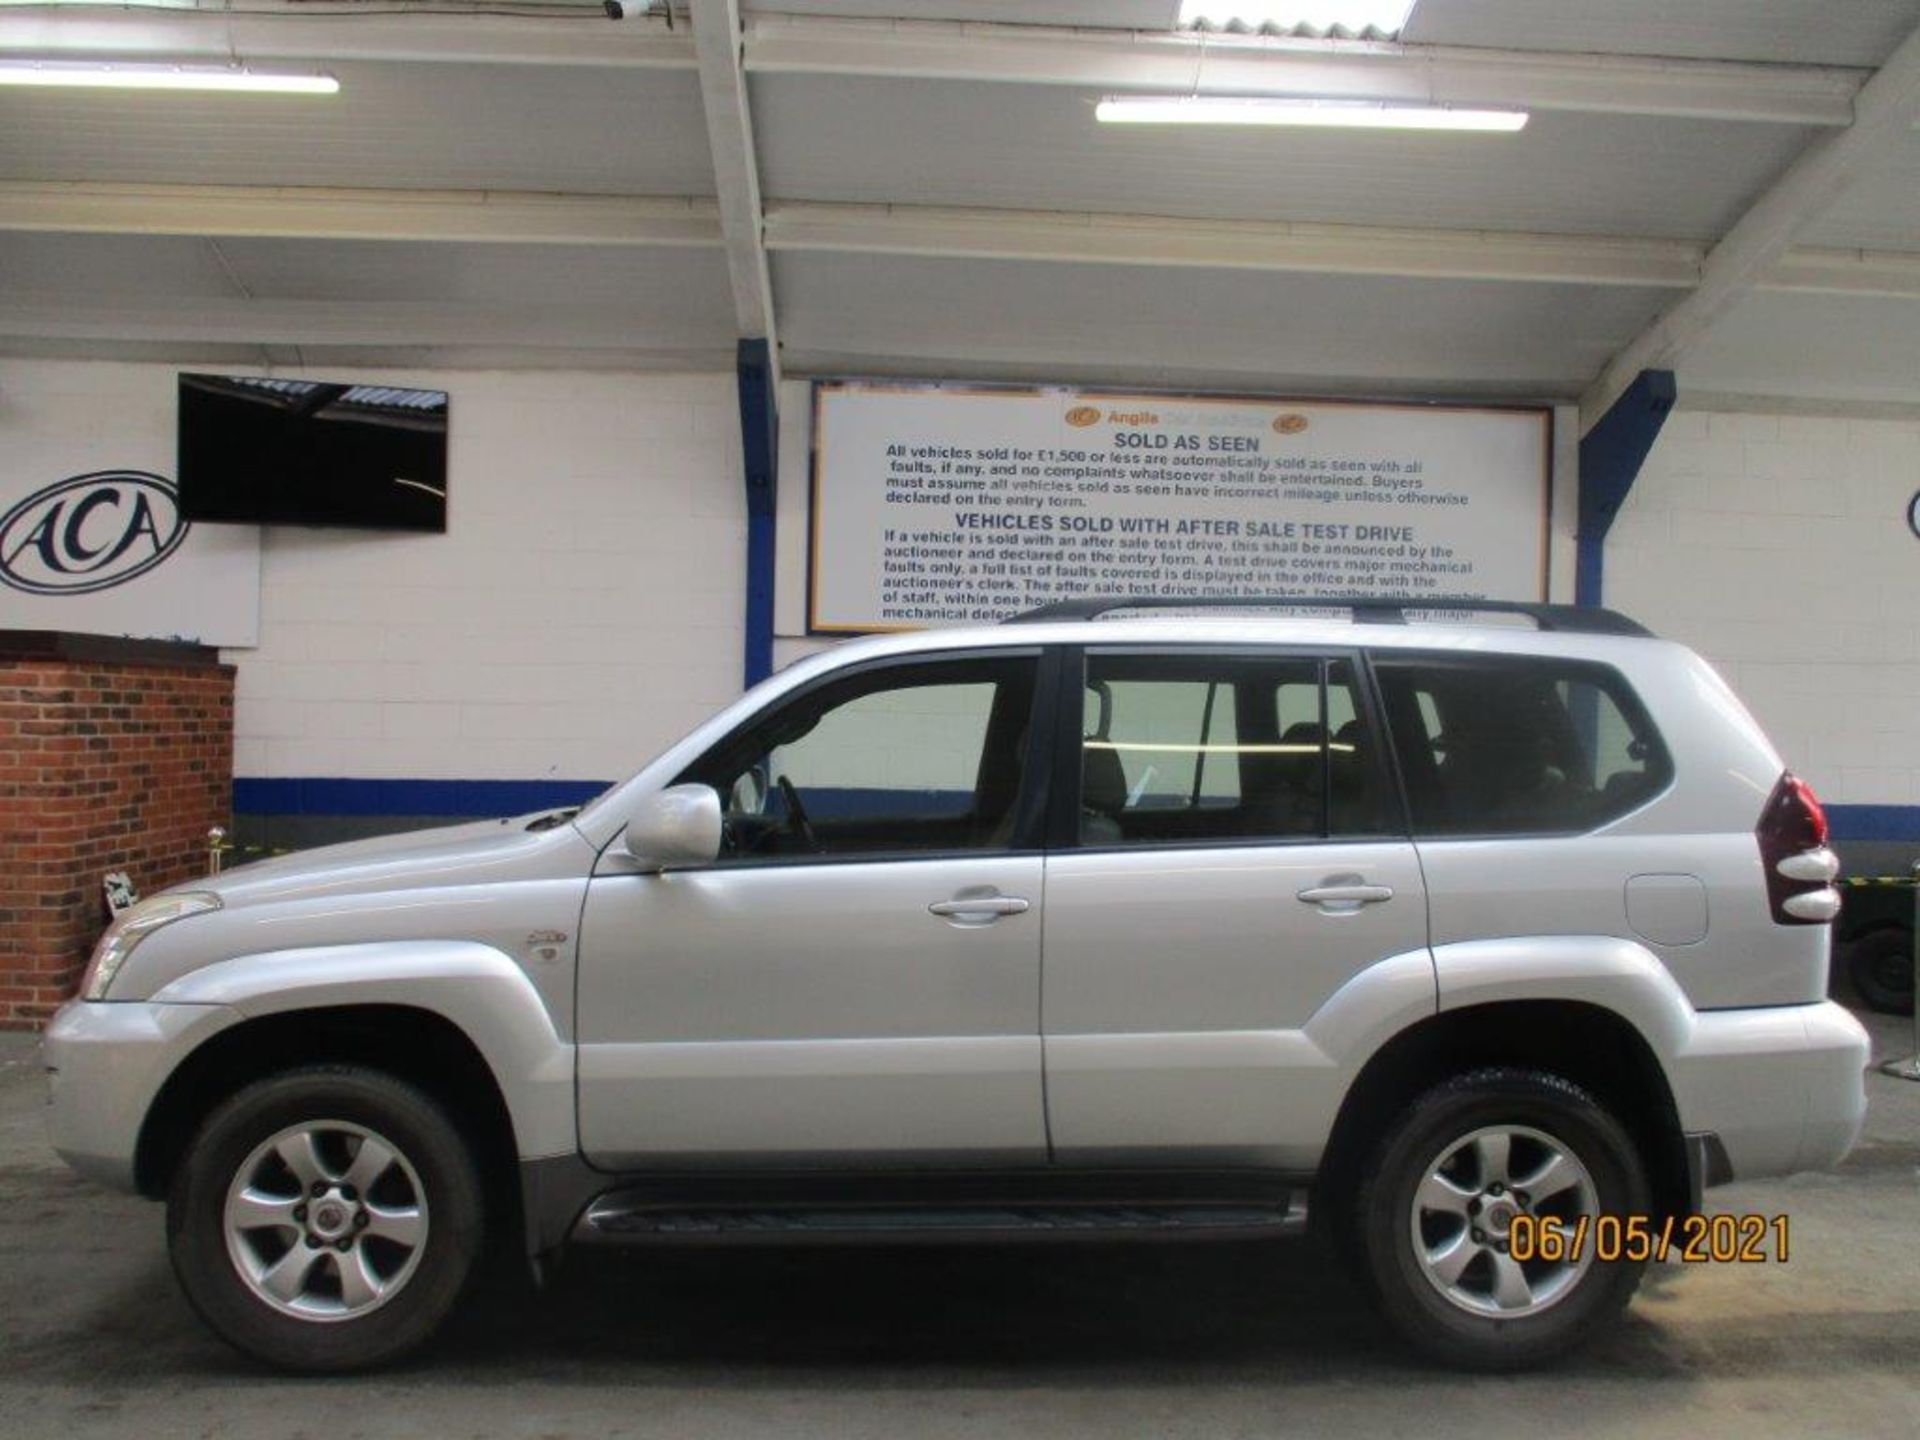 07 57 Toyota L/Cruiser LC4 D 4D - Image 2 of 32